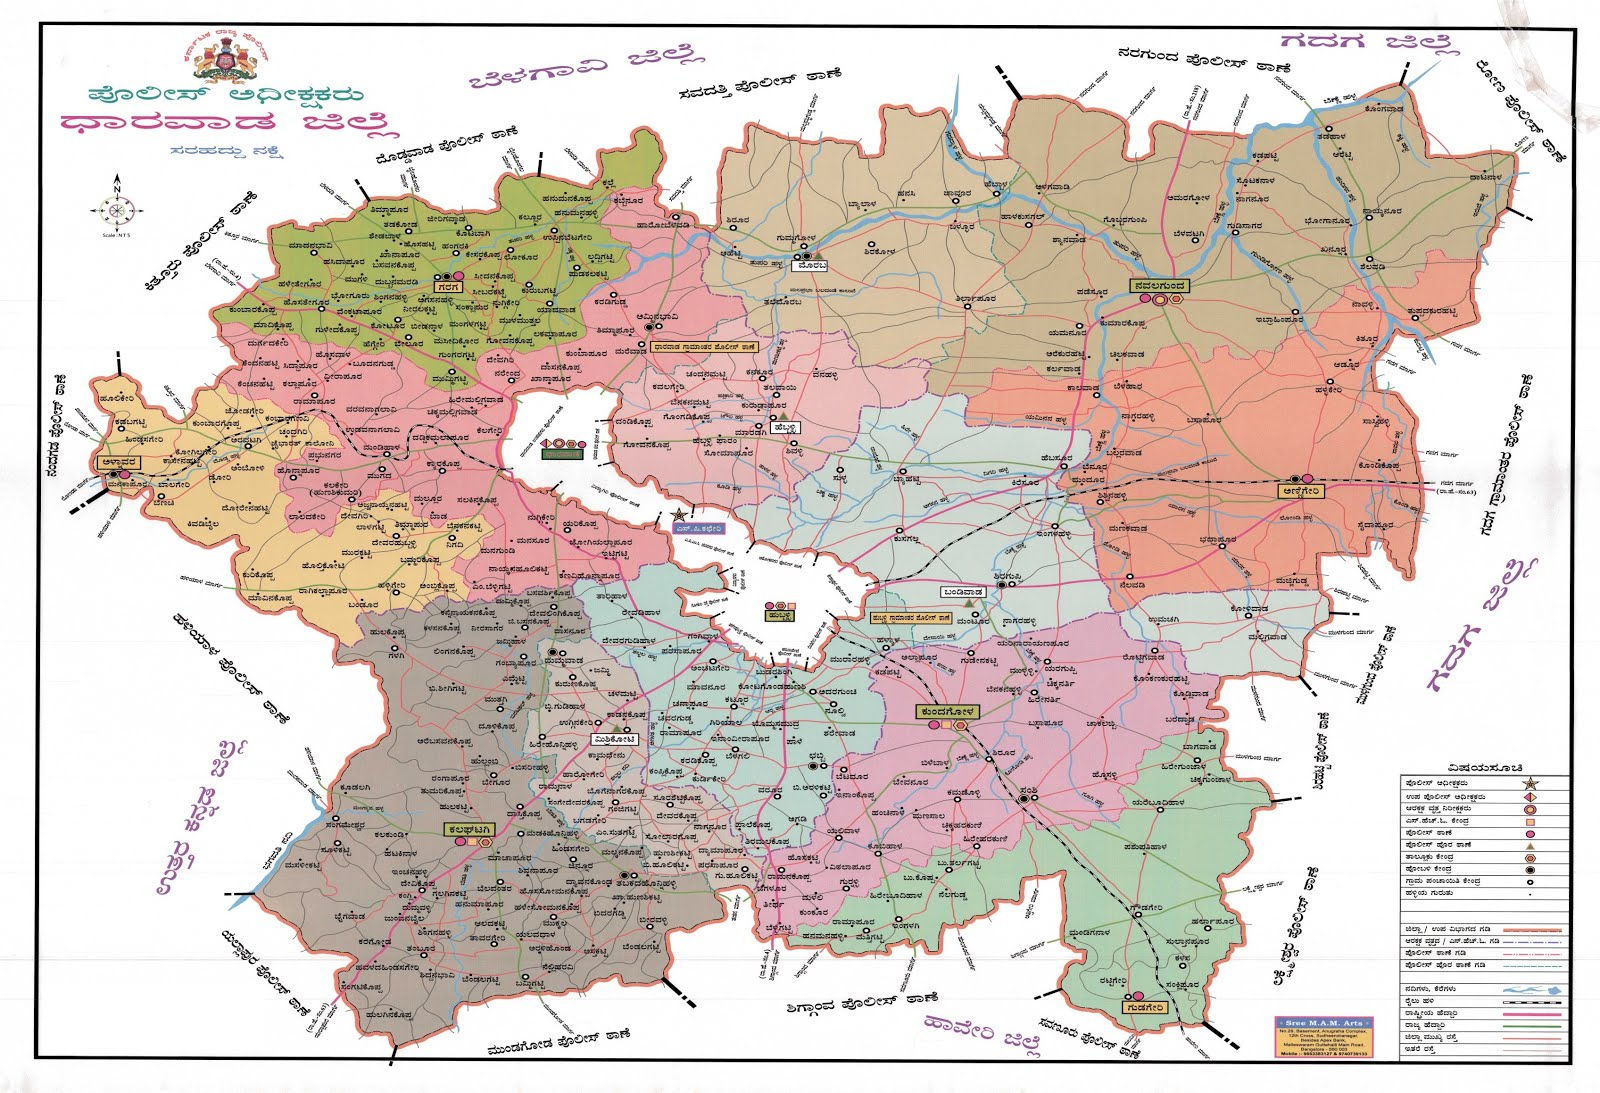 DHARWAD DISTRICT MAP